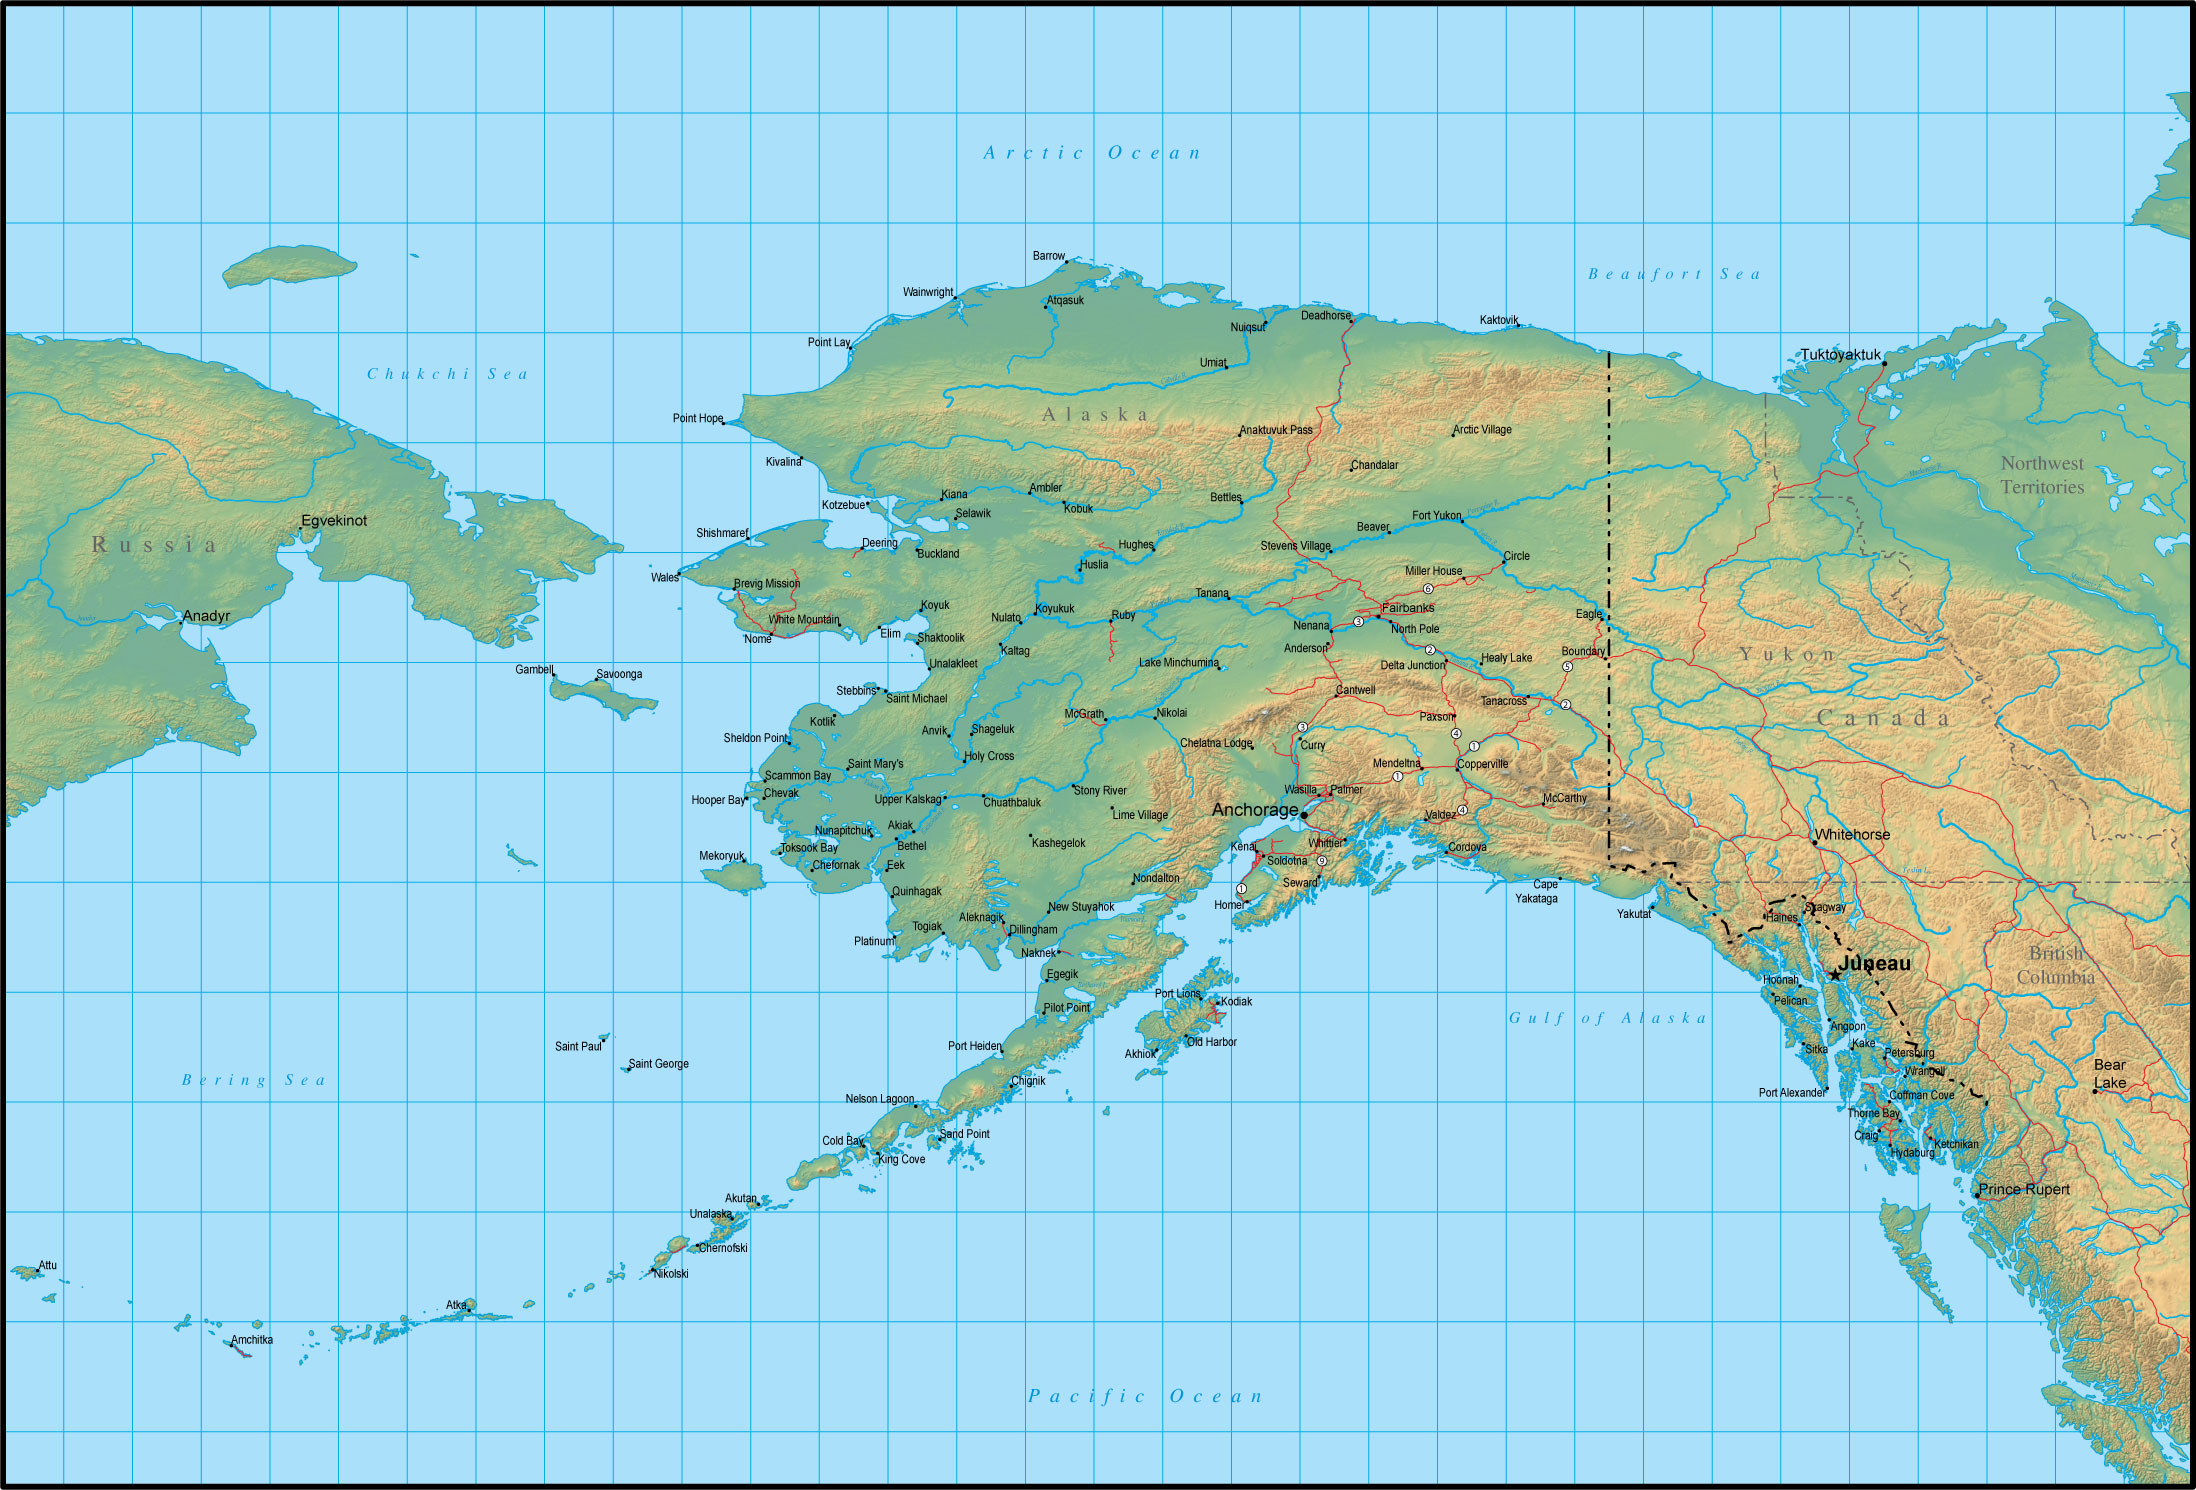 Map Of Alaska And The Surrounding Region